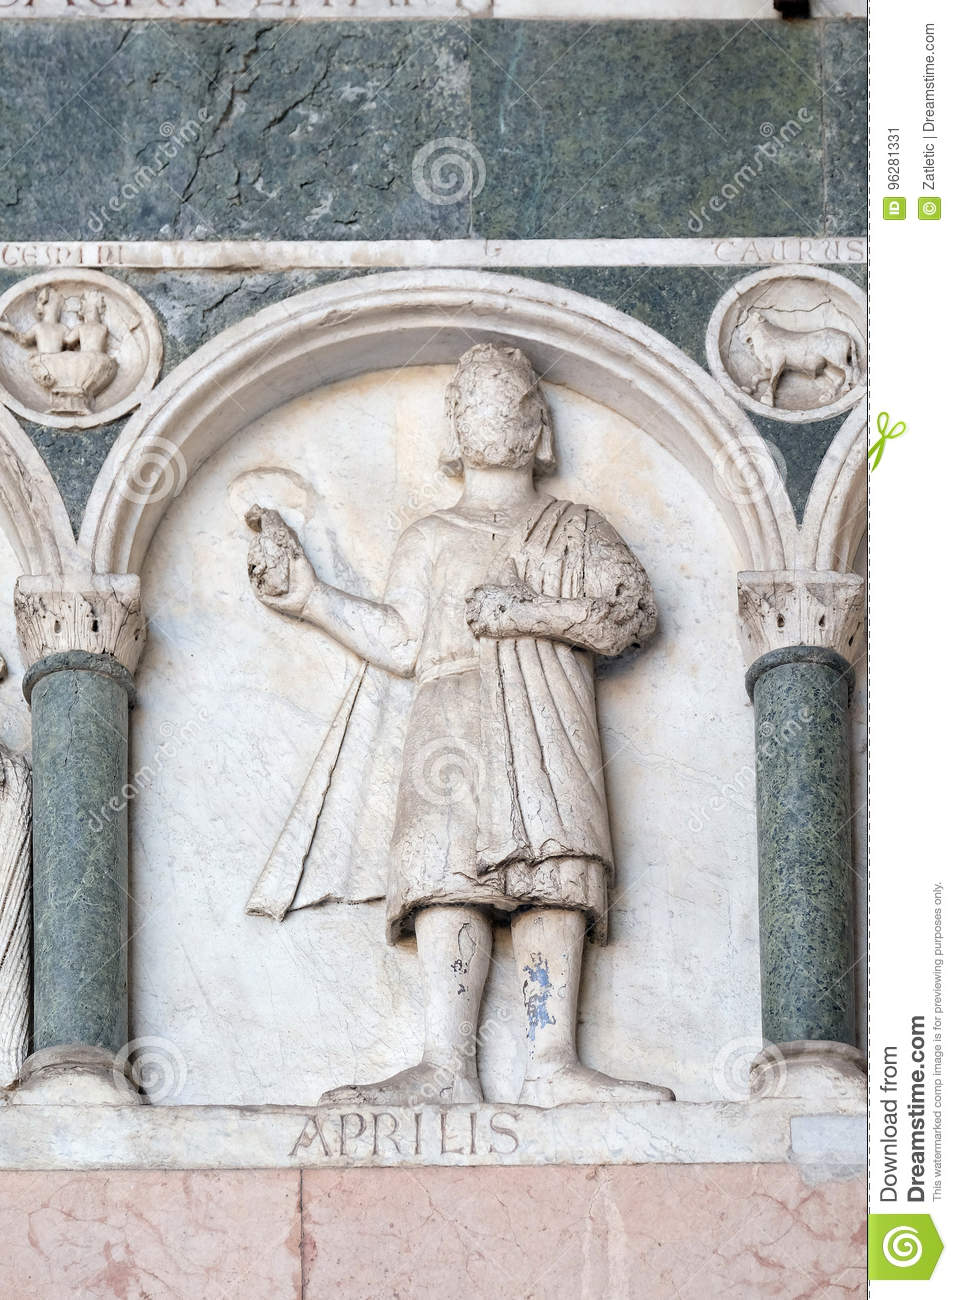 April, detail of the bass-relief representing the Labor of the months of the year, Cathedral in Lucca, Italy